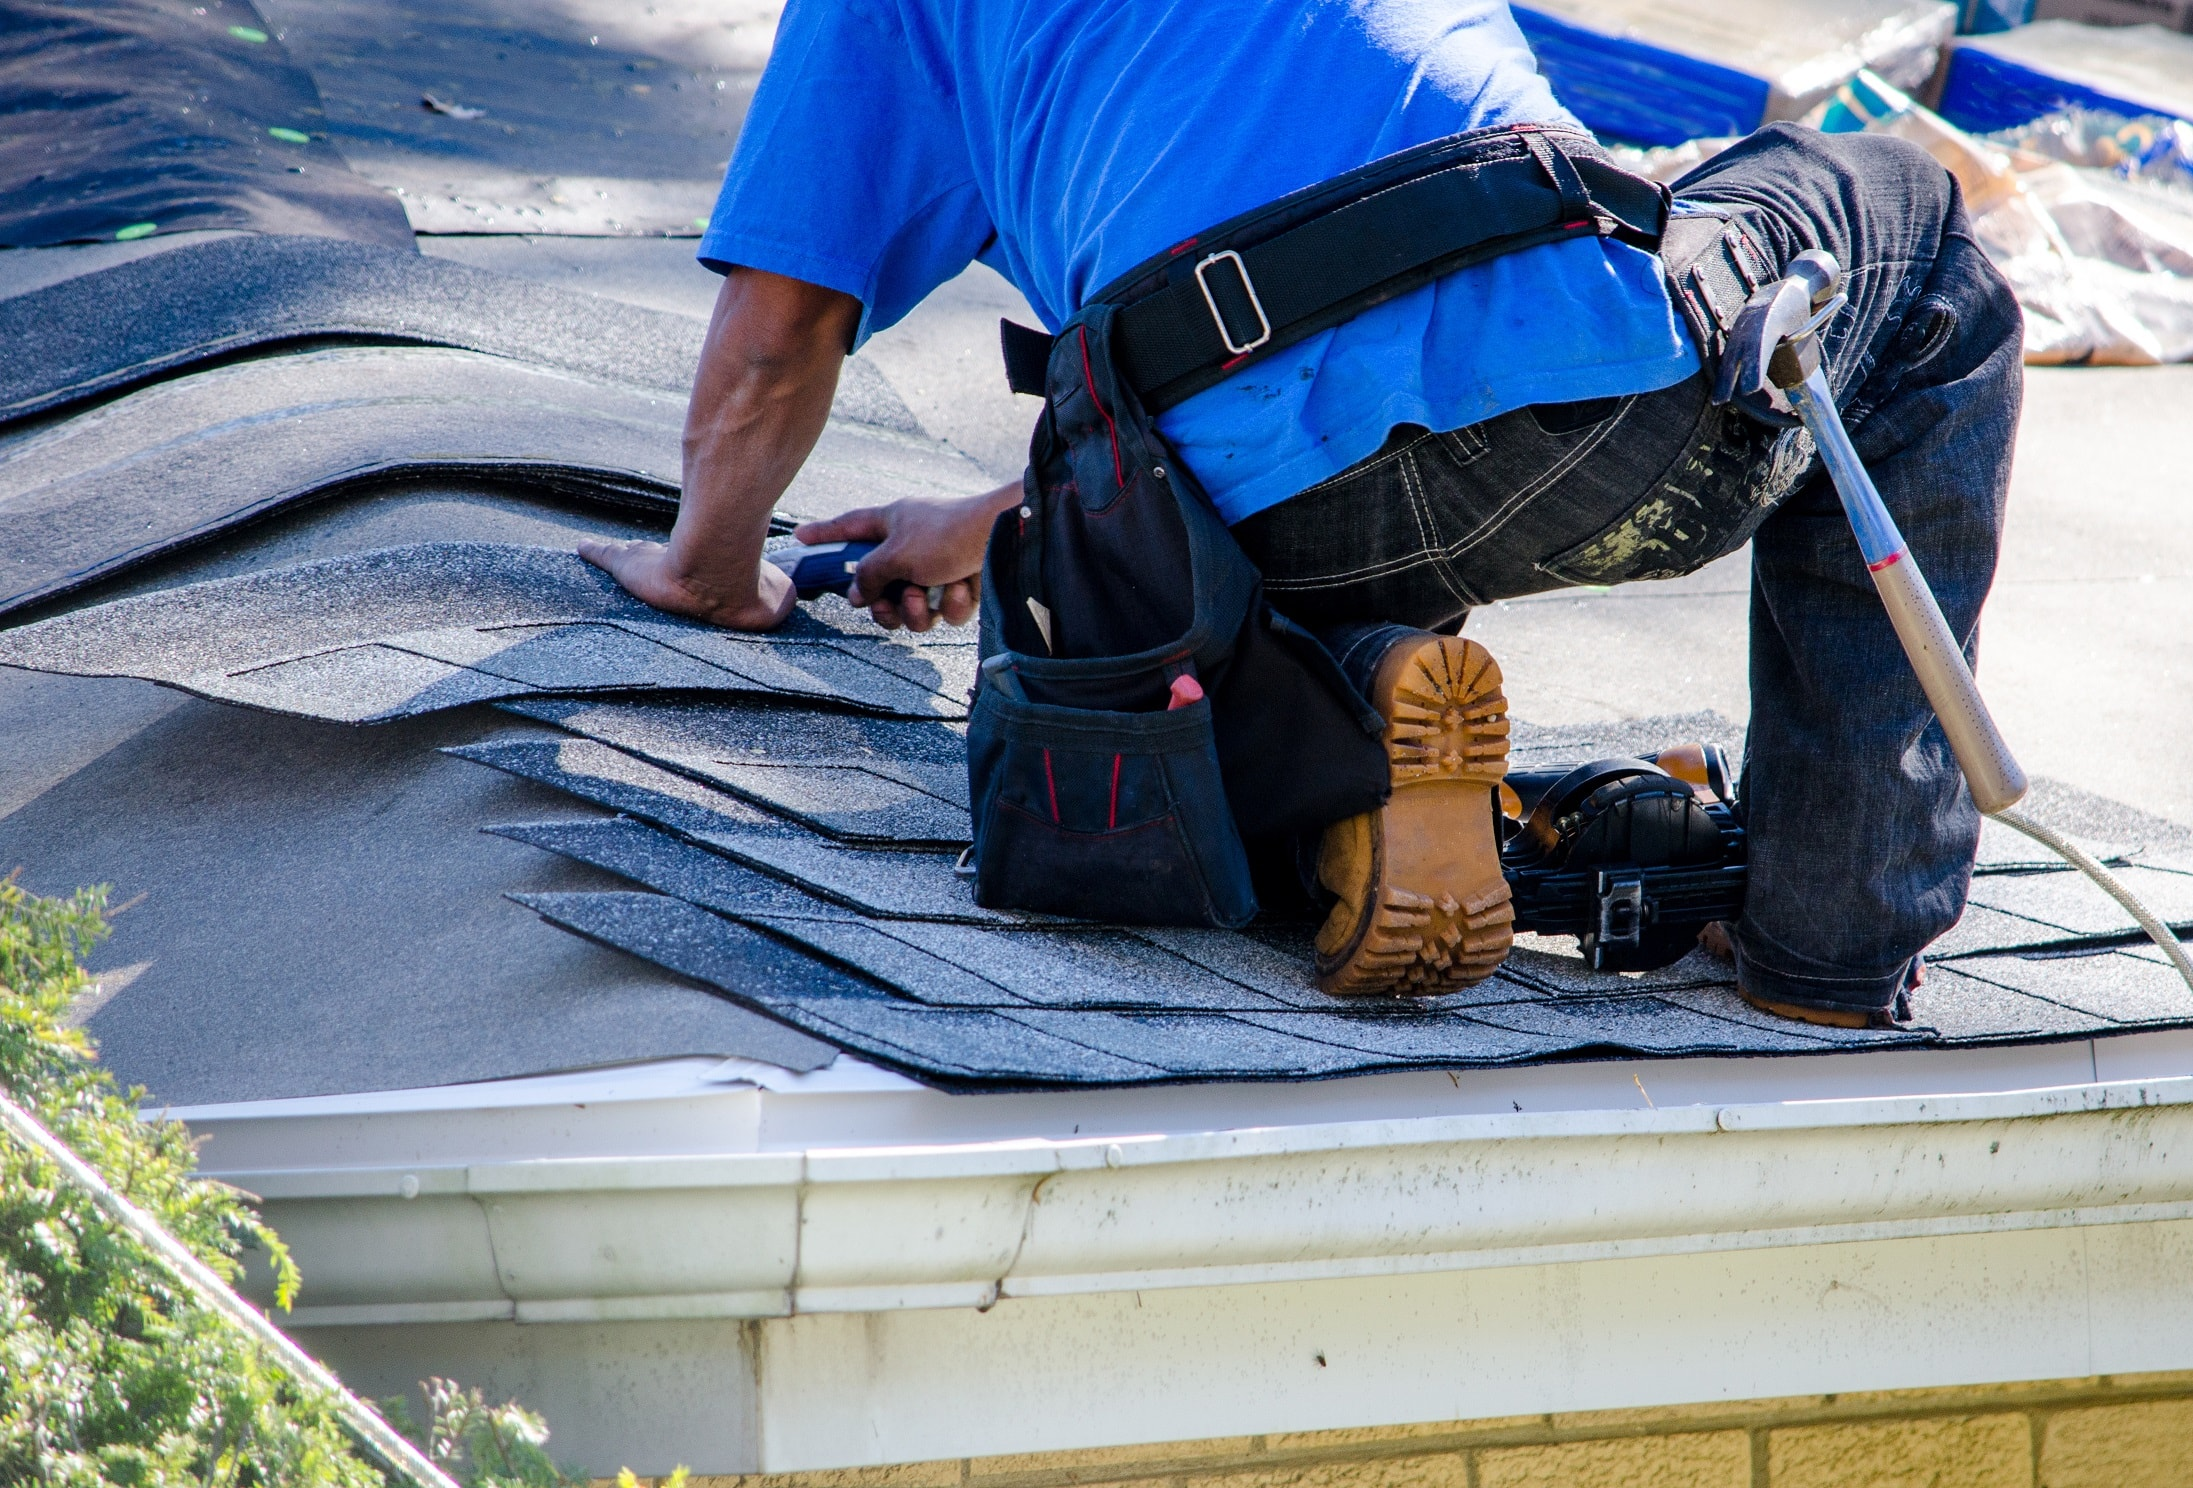 roofer cutting tiles with work boots on